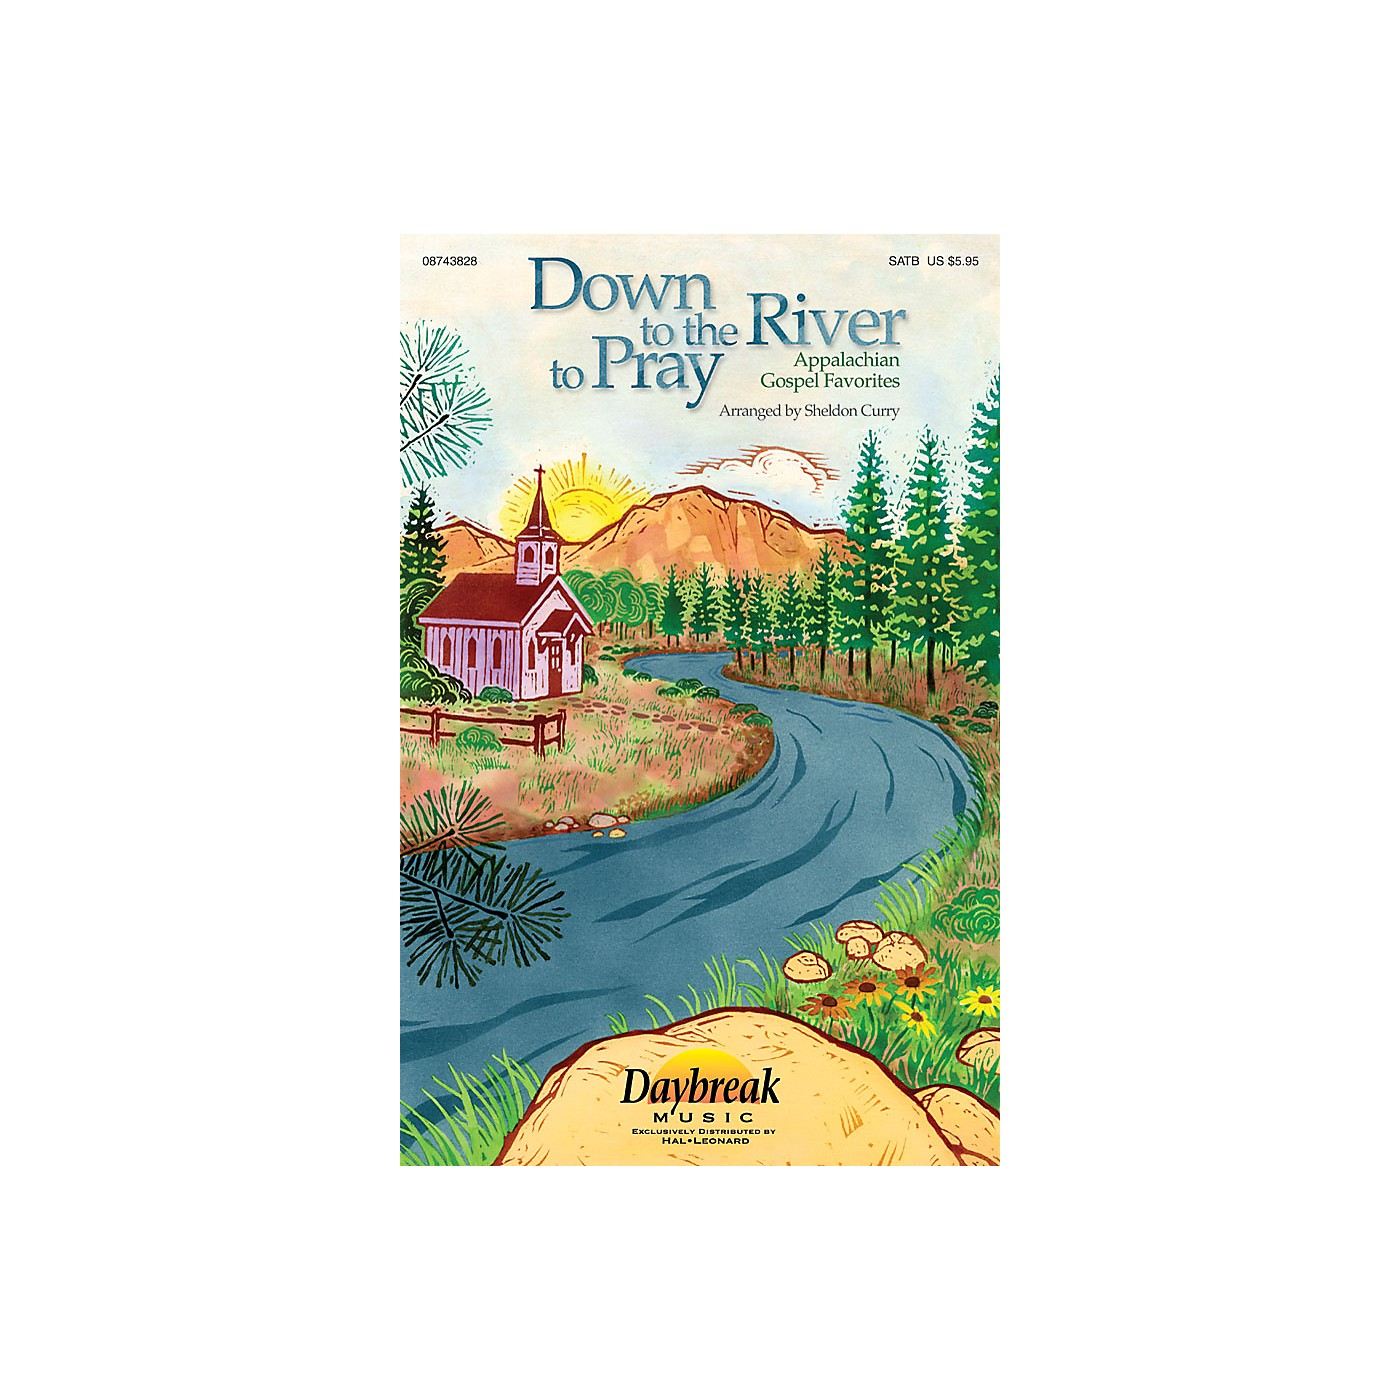 Daybreak Music Down to the River to Pray (Collection) (Appalachian Gospel Favorites) PREV CD Arranged by Sheldon Curry thumbnail